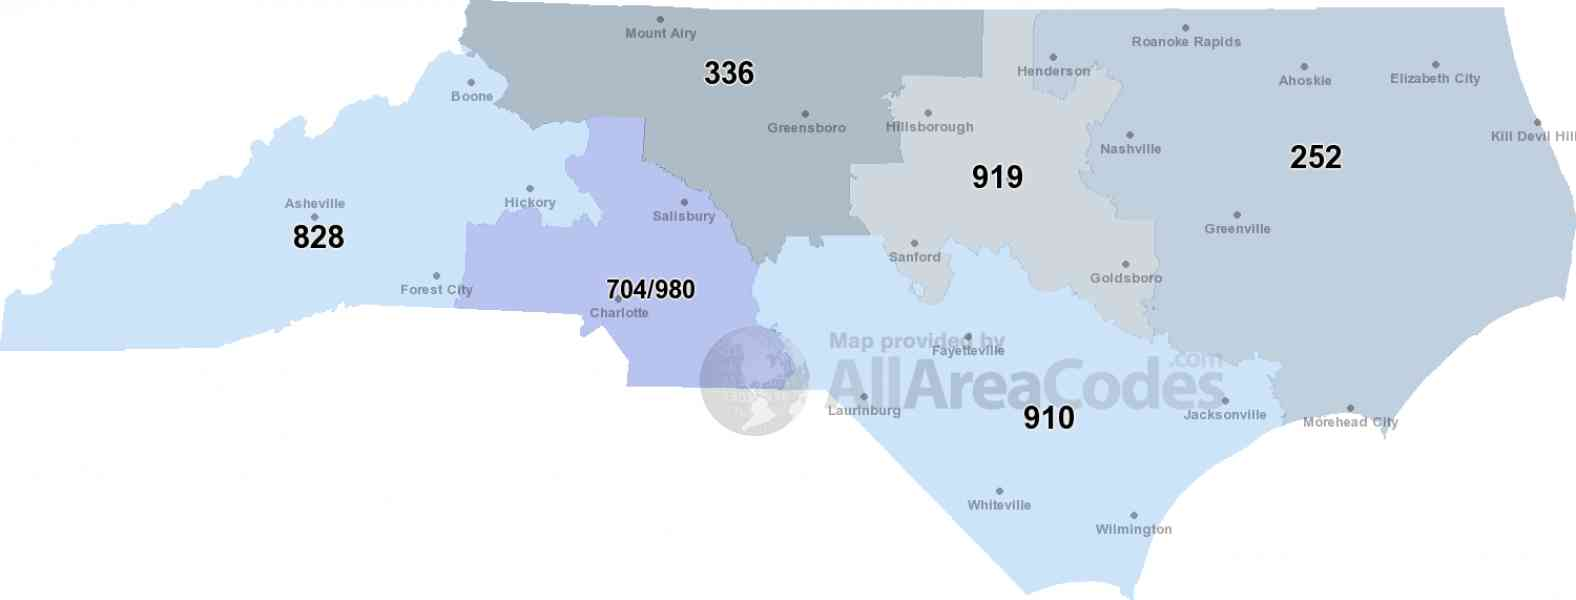 LincMads Area Code Map With Time Zones Area Code Map - Area code map of usa